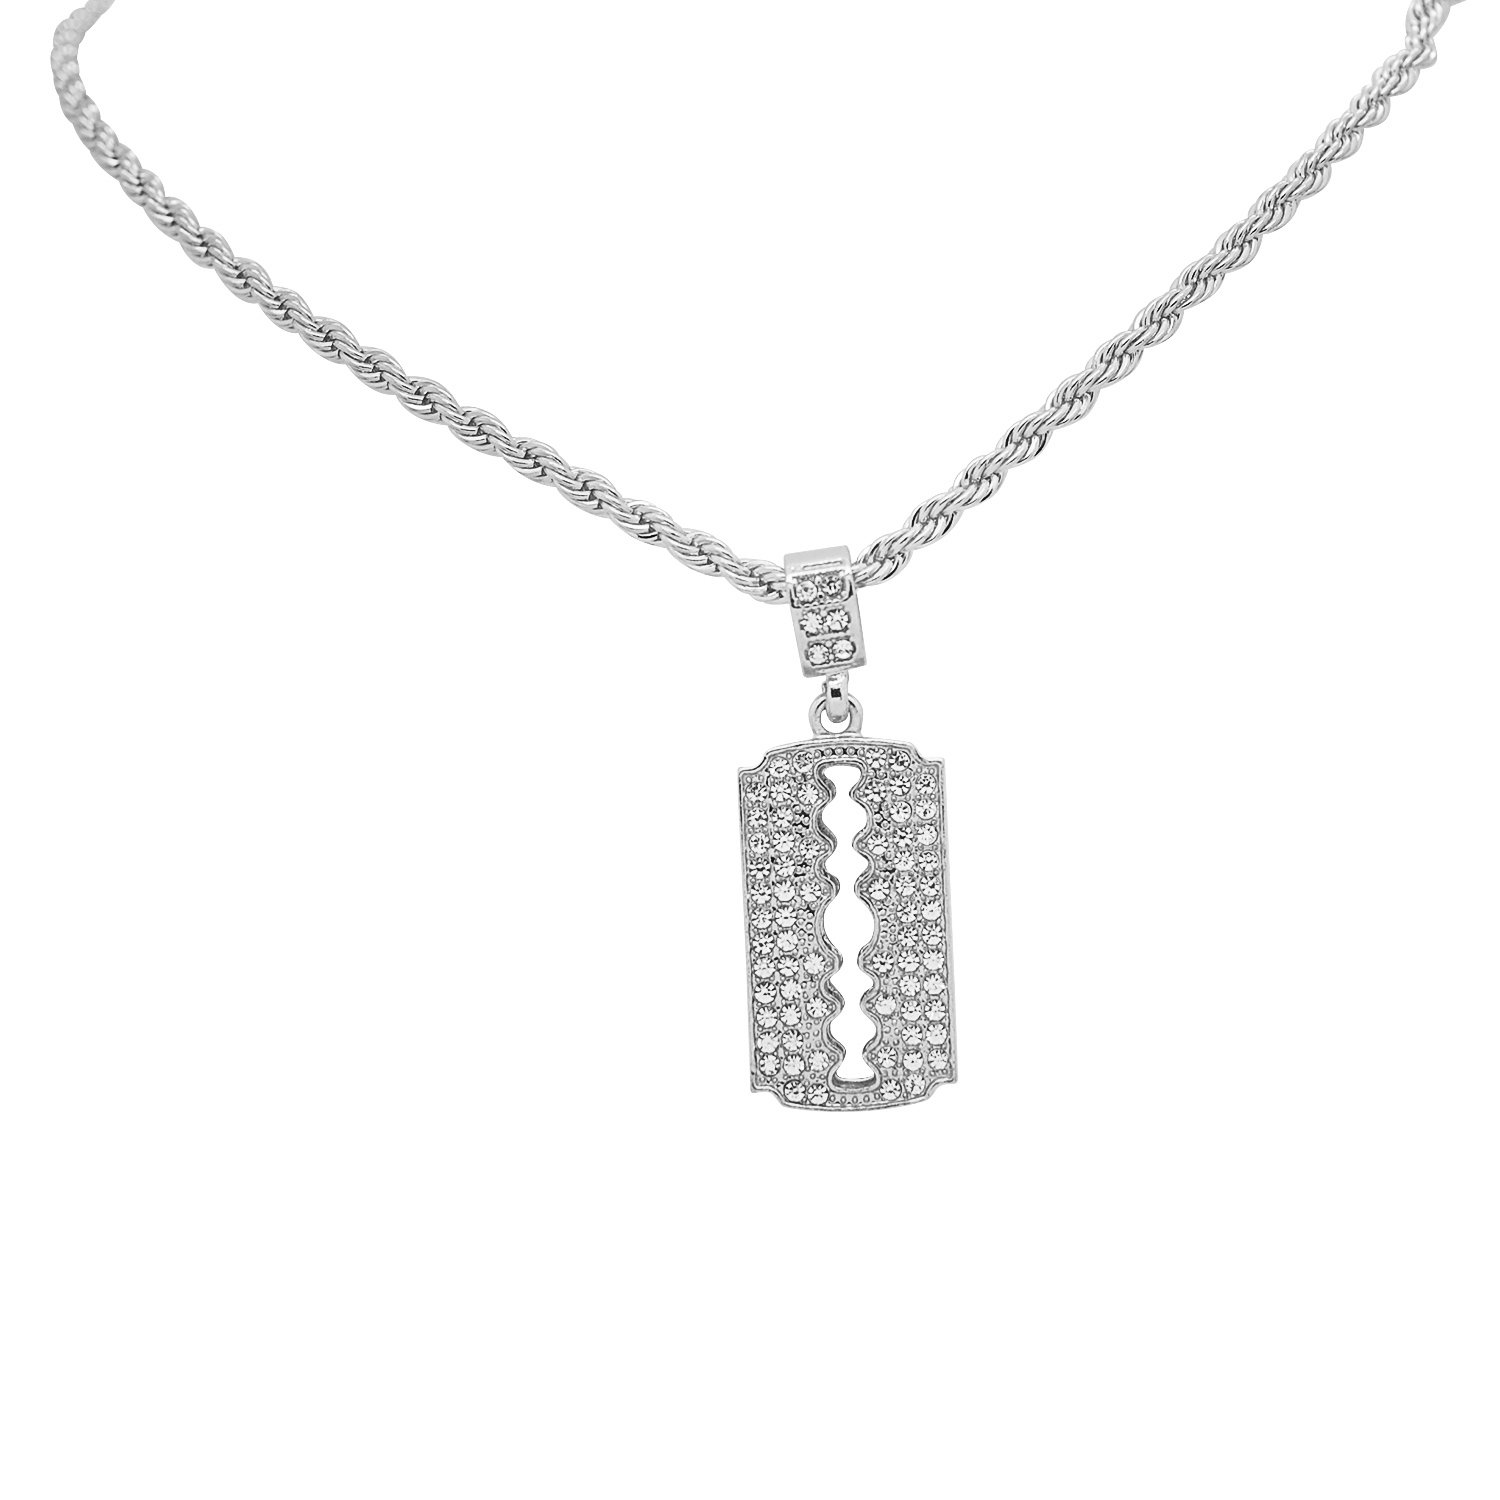 White Gold-Tone Hip Hop Bling Simulated Crystal Razor Blade Pendant with 18 Tennis Chain and 24 Rope Chain